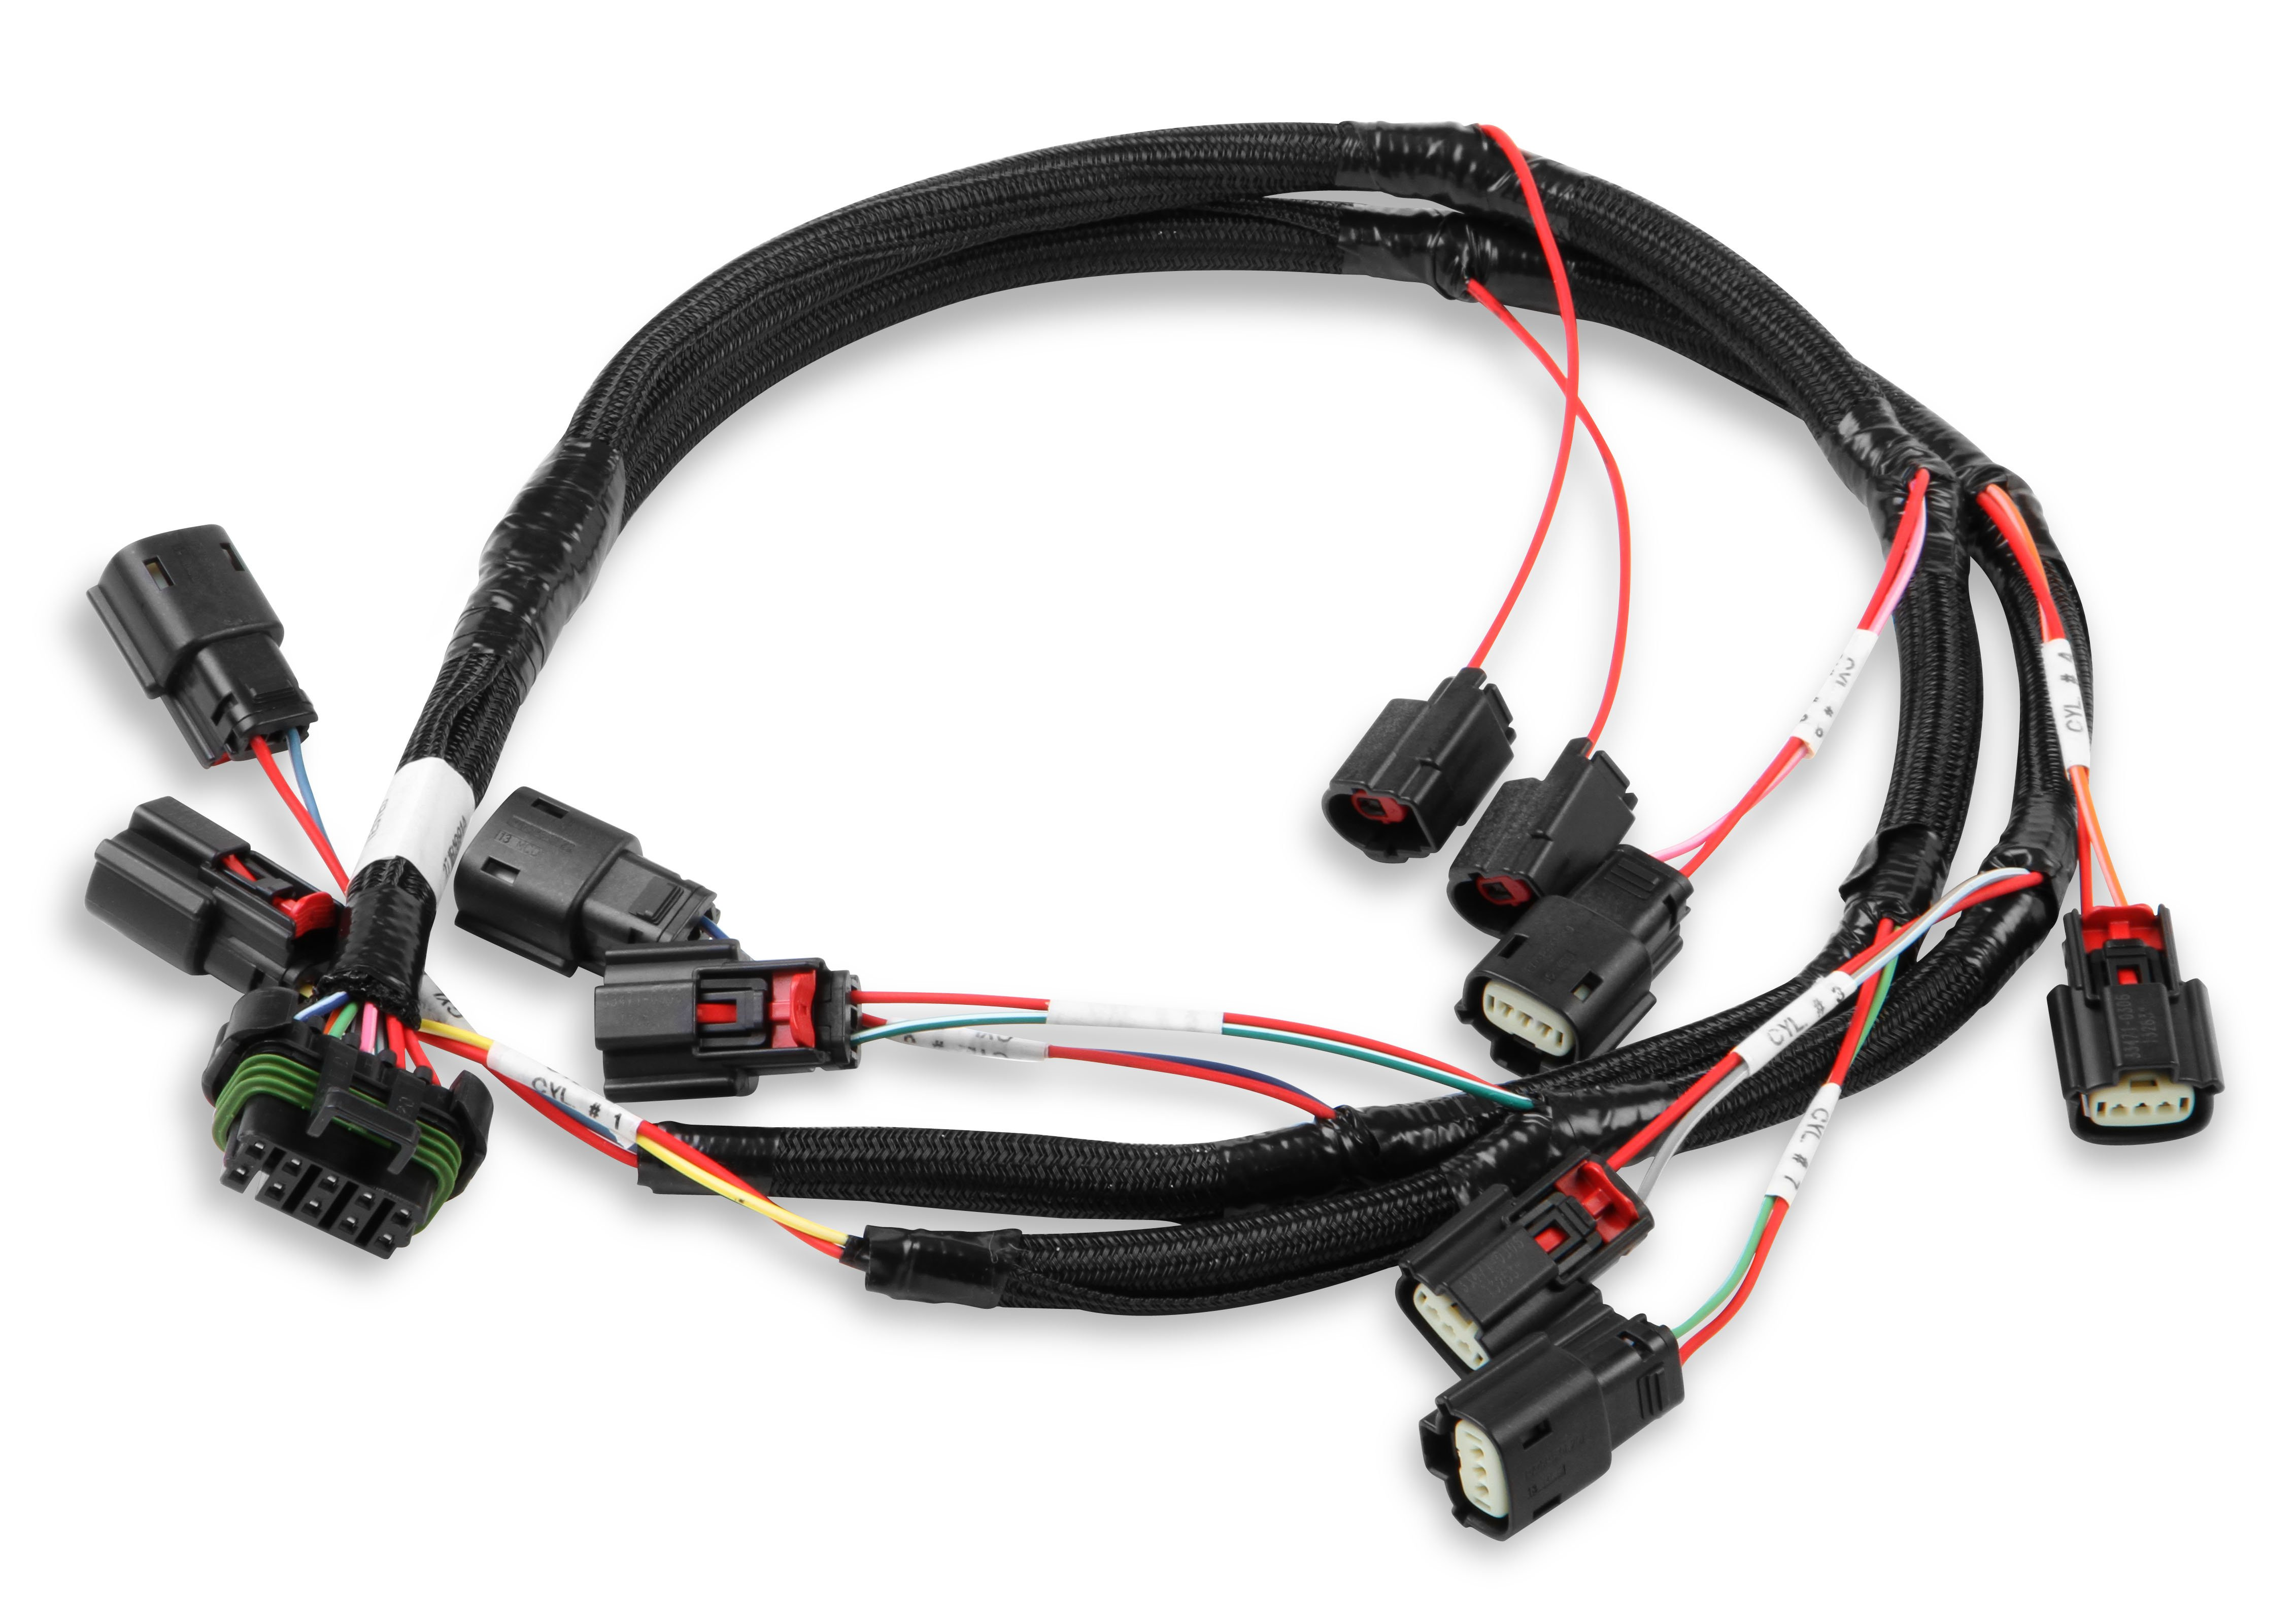 558 317 holley efi 558 317 ford coyote coil harness coyote wiring harness at panicattacktreatment.co